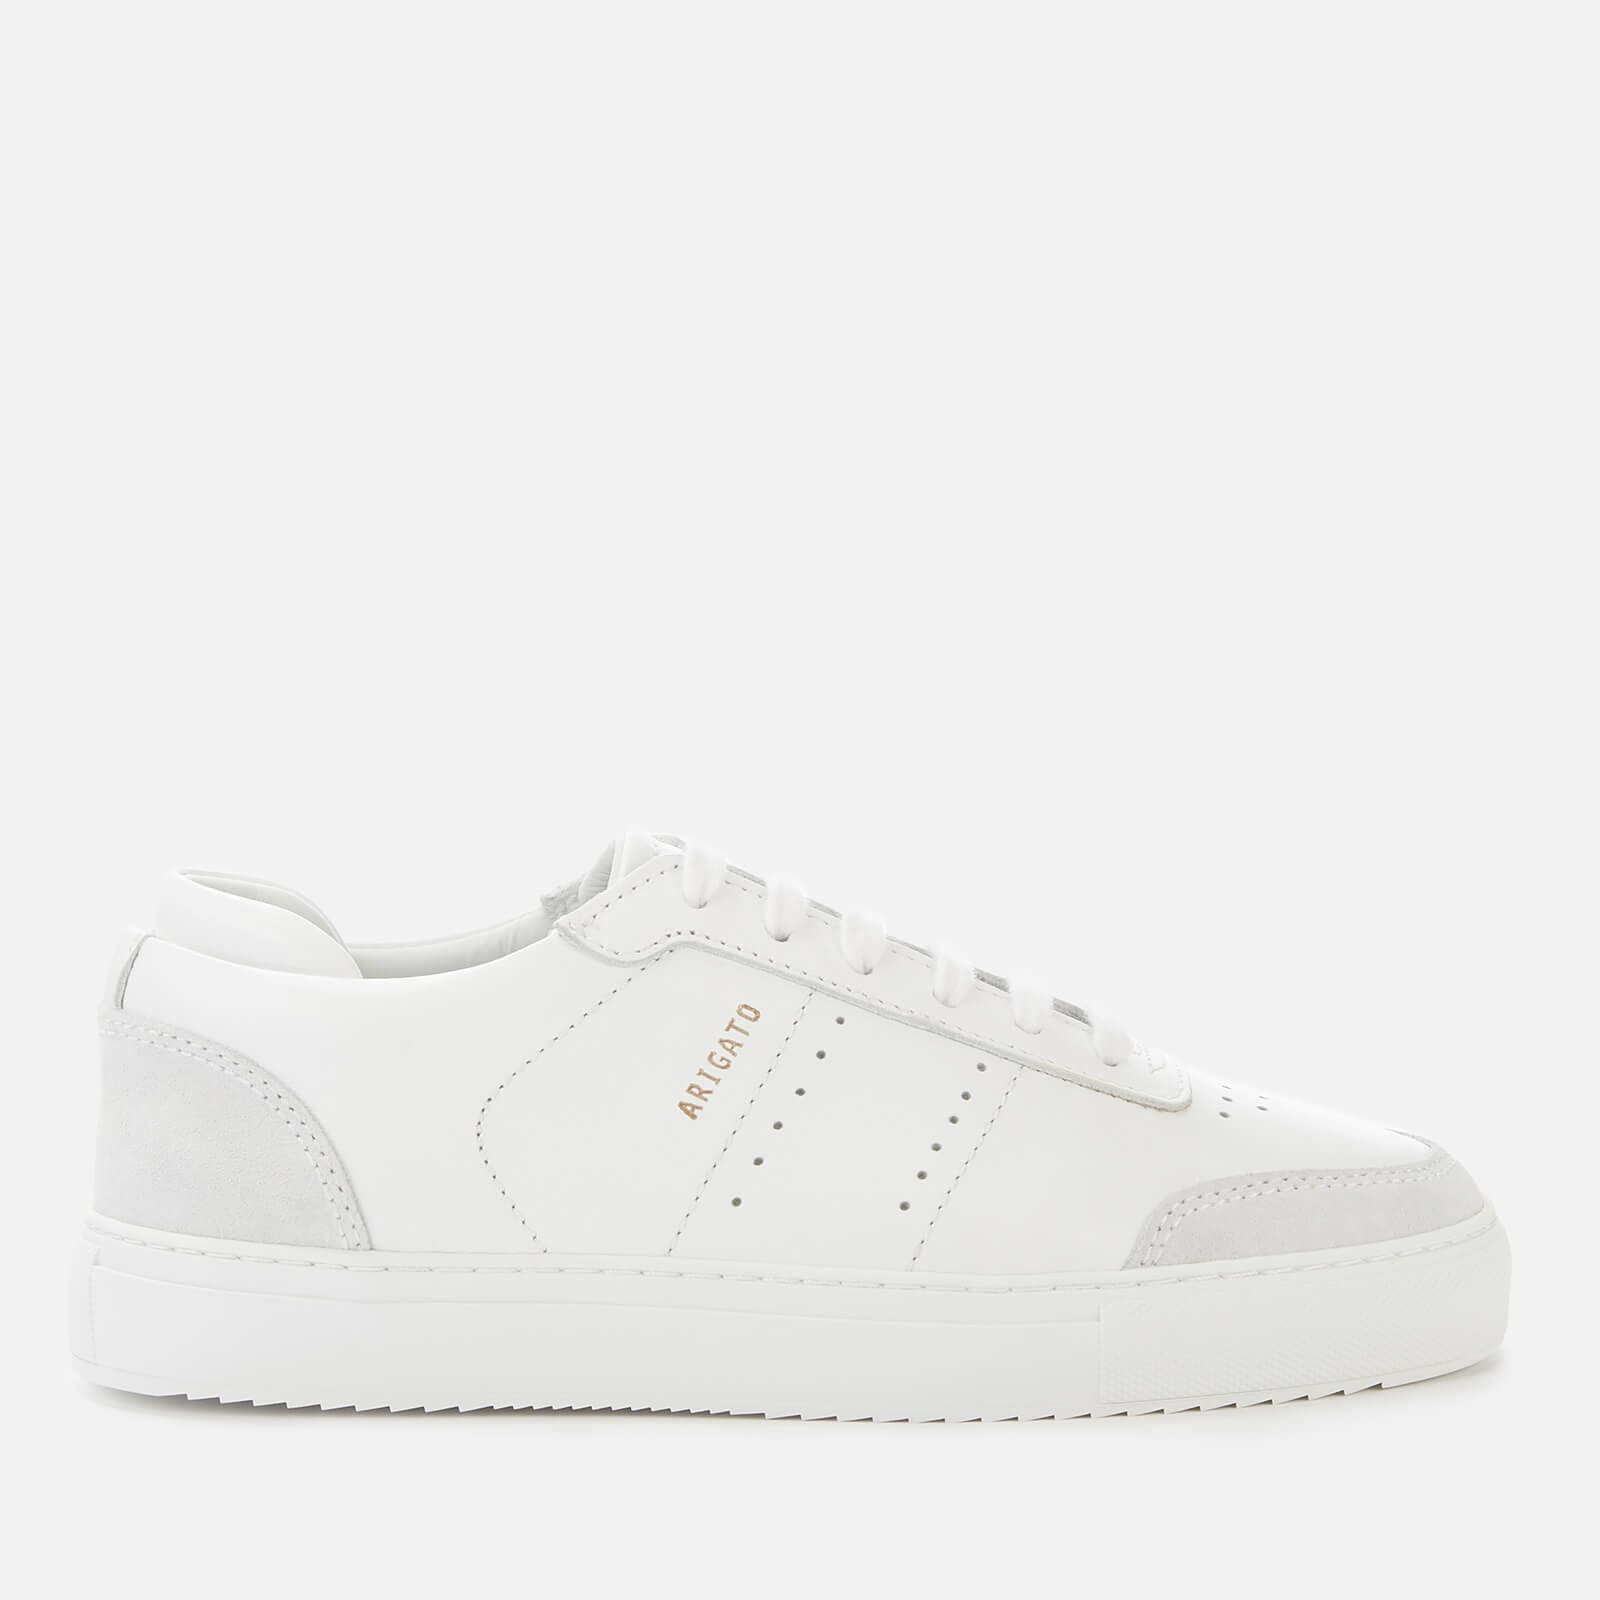 Axel arigato women, Leather trainers